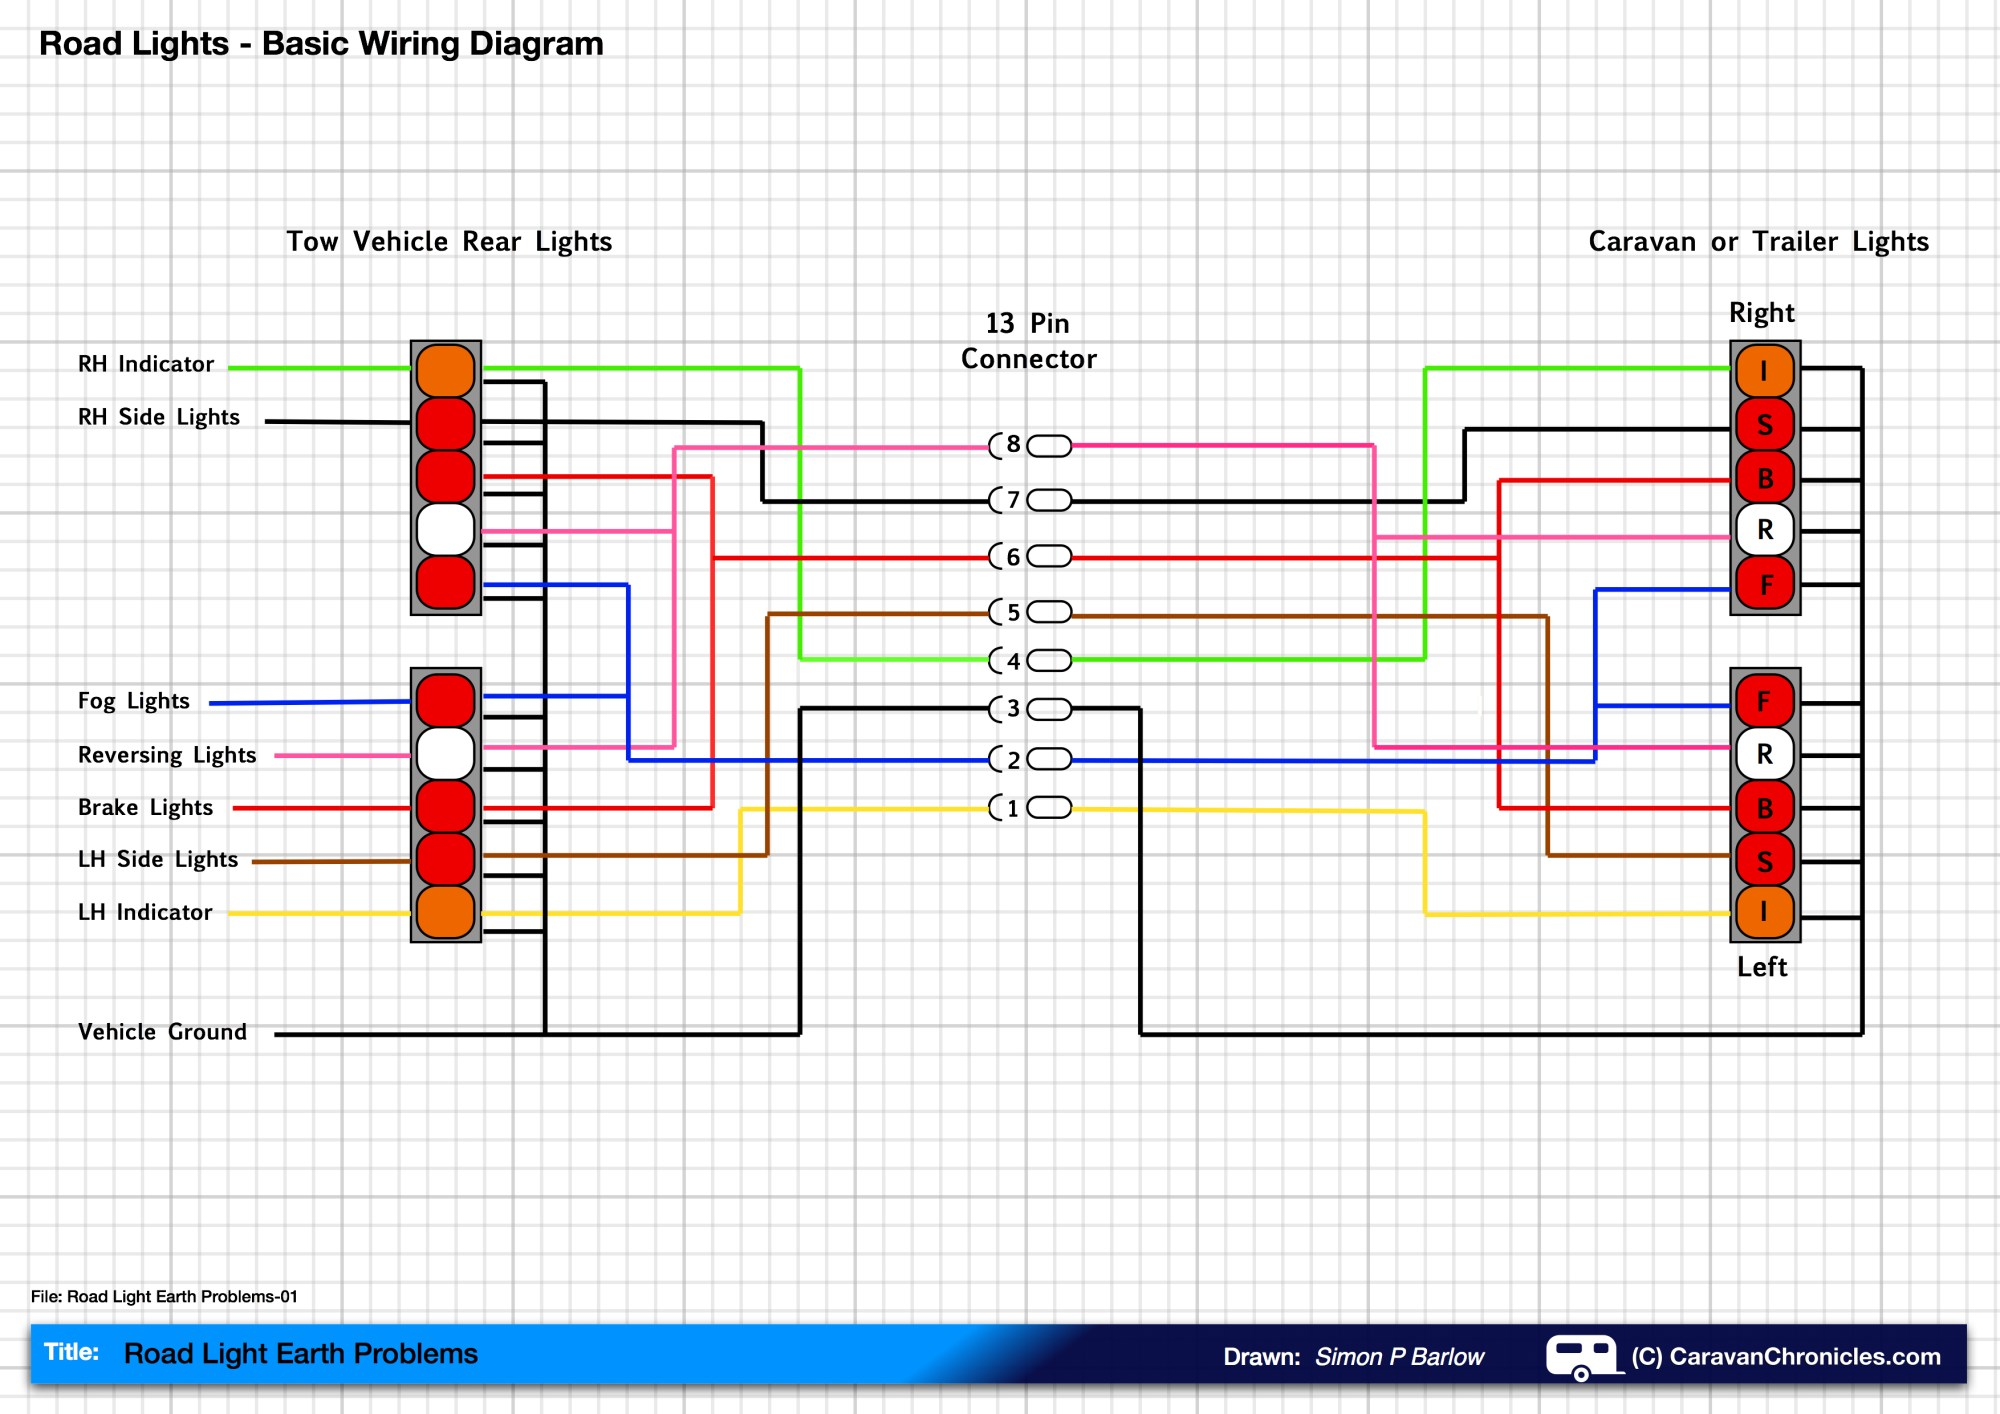 hight resolution of vauxhall fog lights wiring diagram wiring diagramvauxhall combo rear light wiring diagram wiring libraryroad light earth